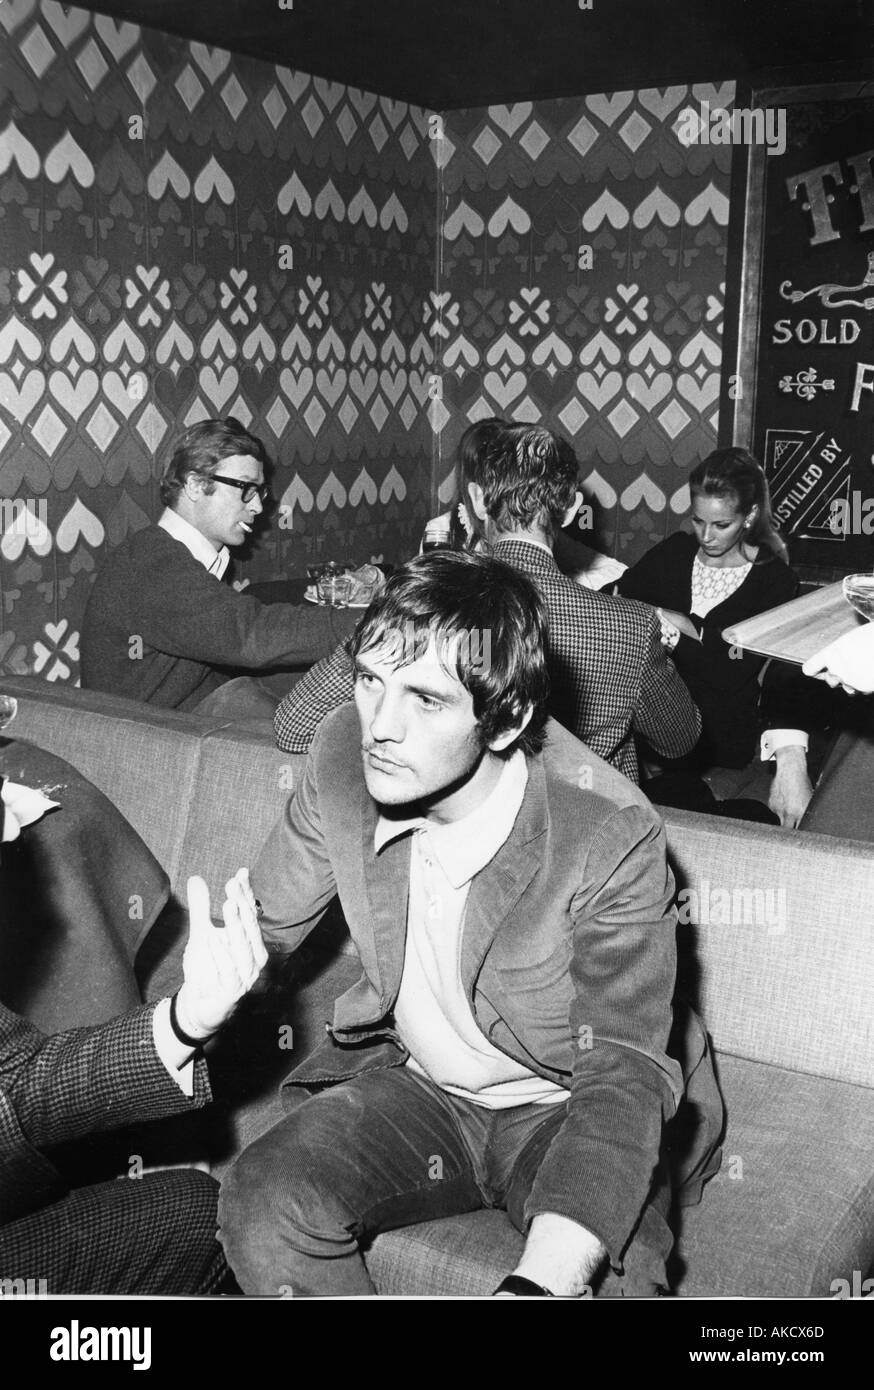 TERENCE STAMP British actor relaxing in a London bar in the 1960s Note Michael Caine in the background - Stock Image